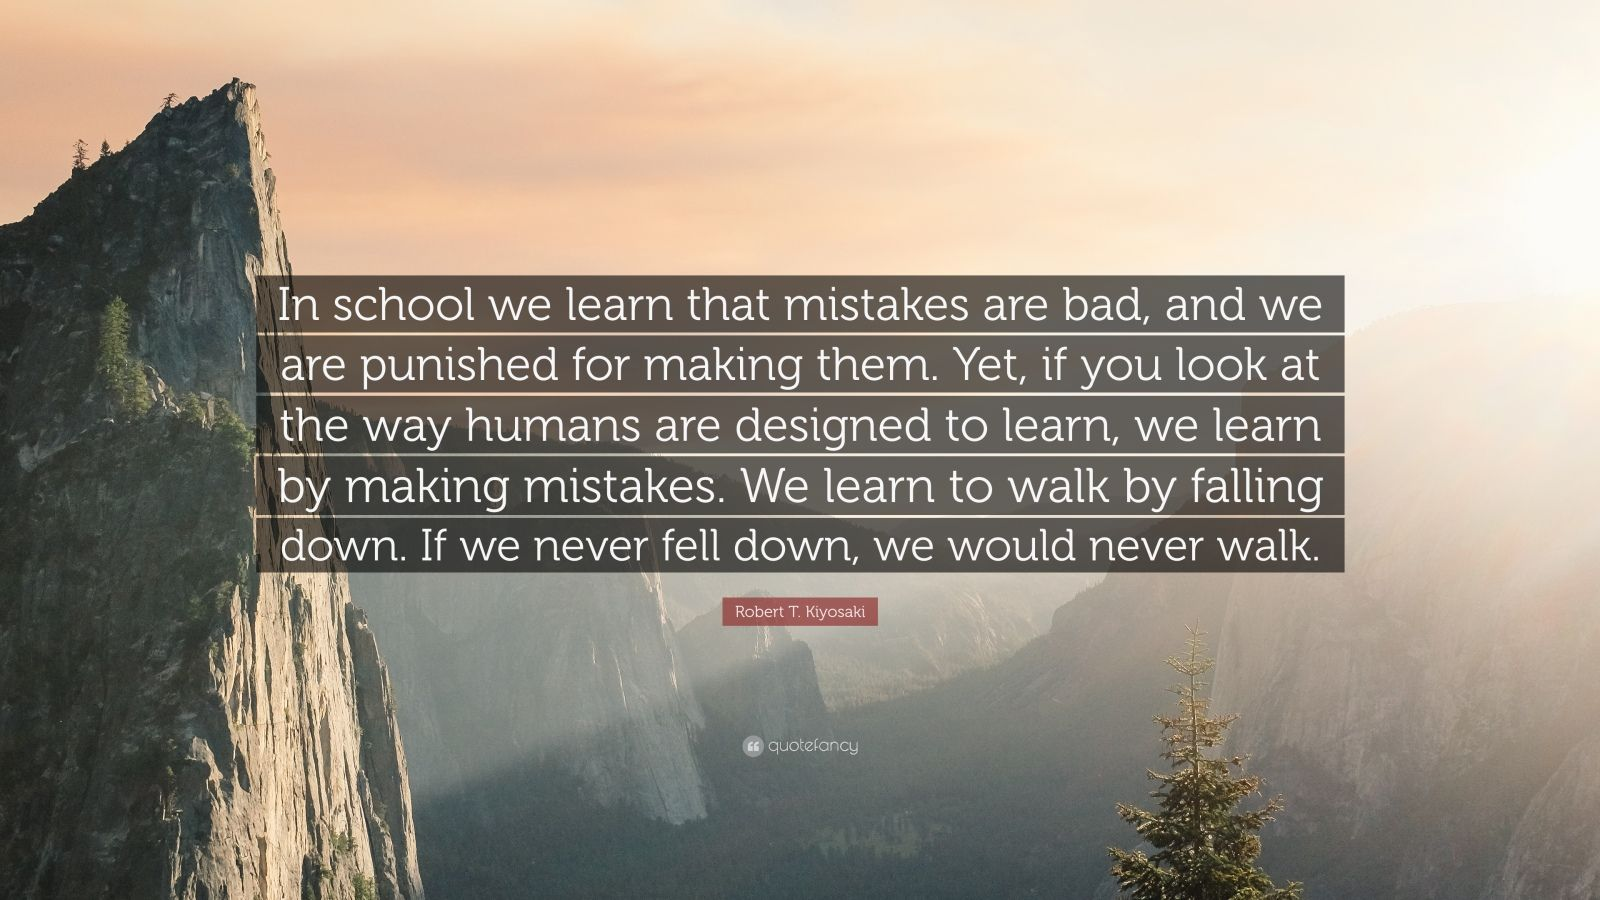 """Robert T. Kiyosaki Quote: """"In school we learn that mistakes are bad, and we are punished for making them. Yet, if you look at the way humans are designed to learn, we learn by making mistakes. We learn to walk by falling down. If we never fell down, we would never walk."""""""